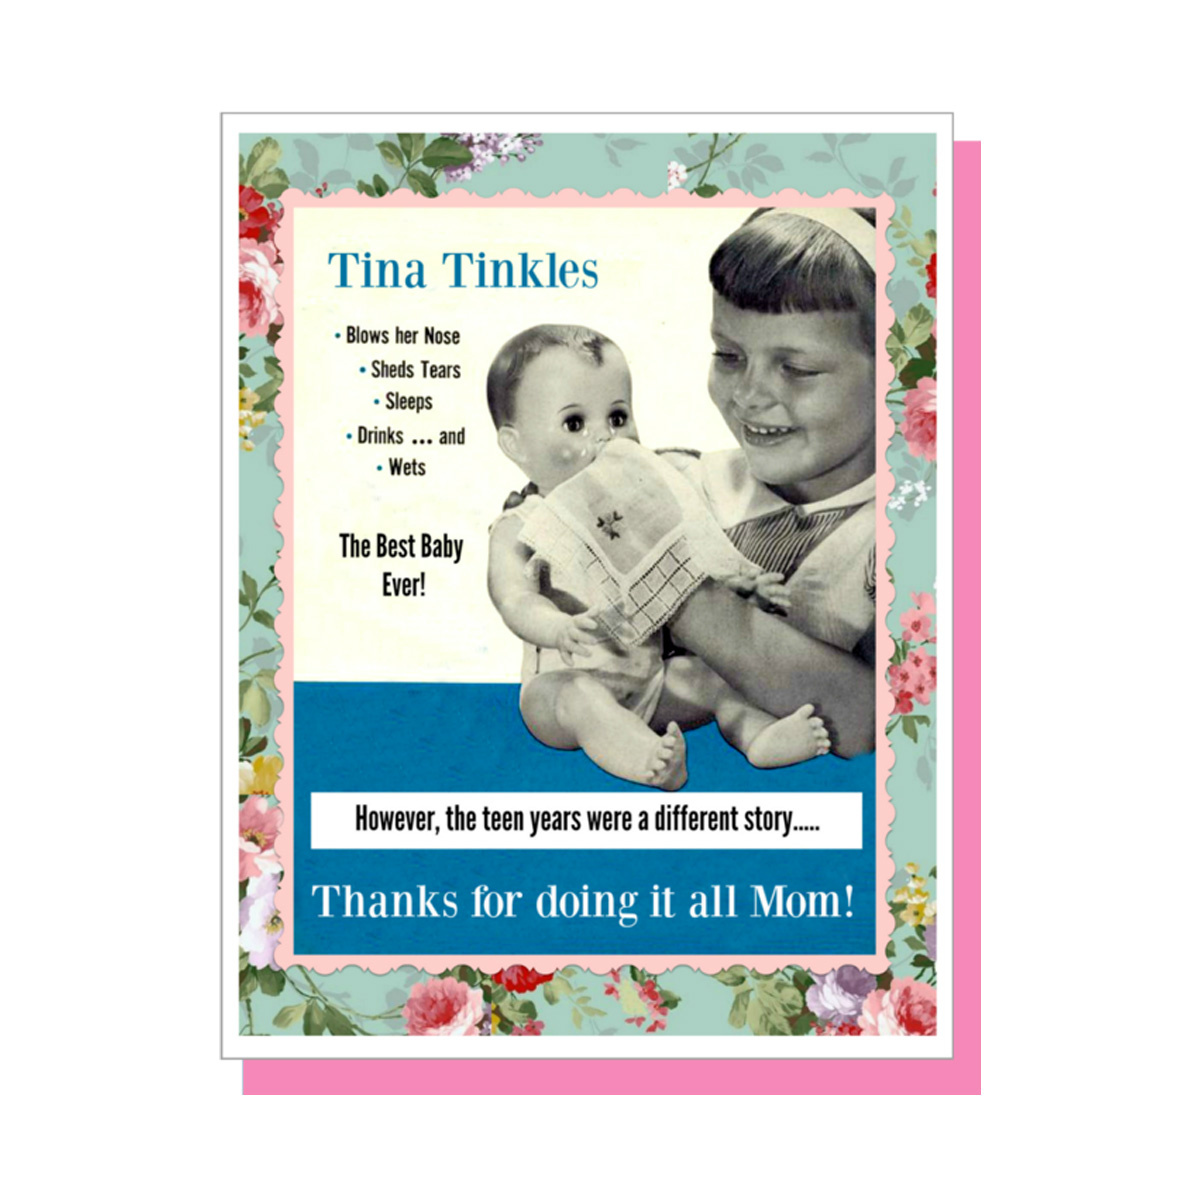 Happy Mother's Day - Tina Tinkles-1